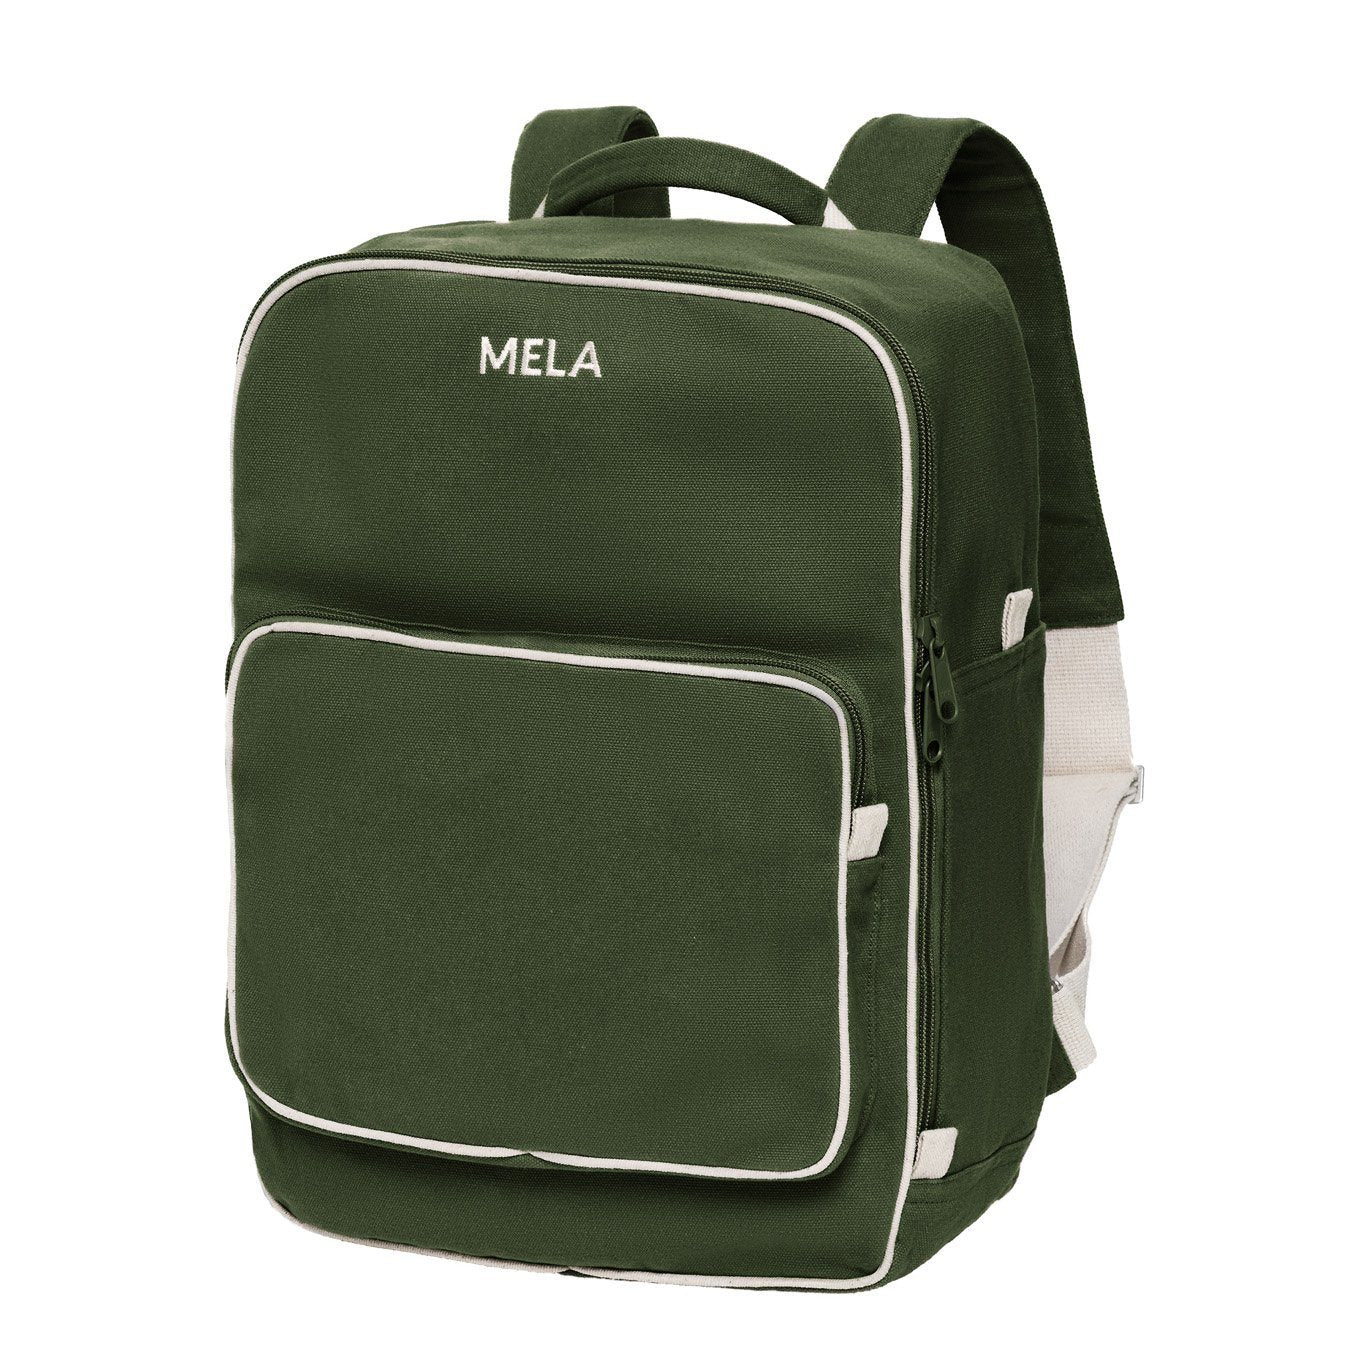 Backpack MELA II Olive Green - Komodo Fashion